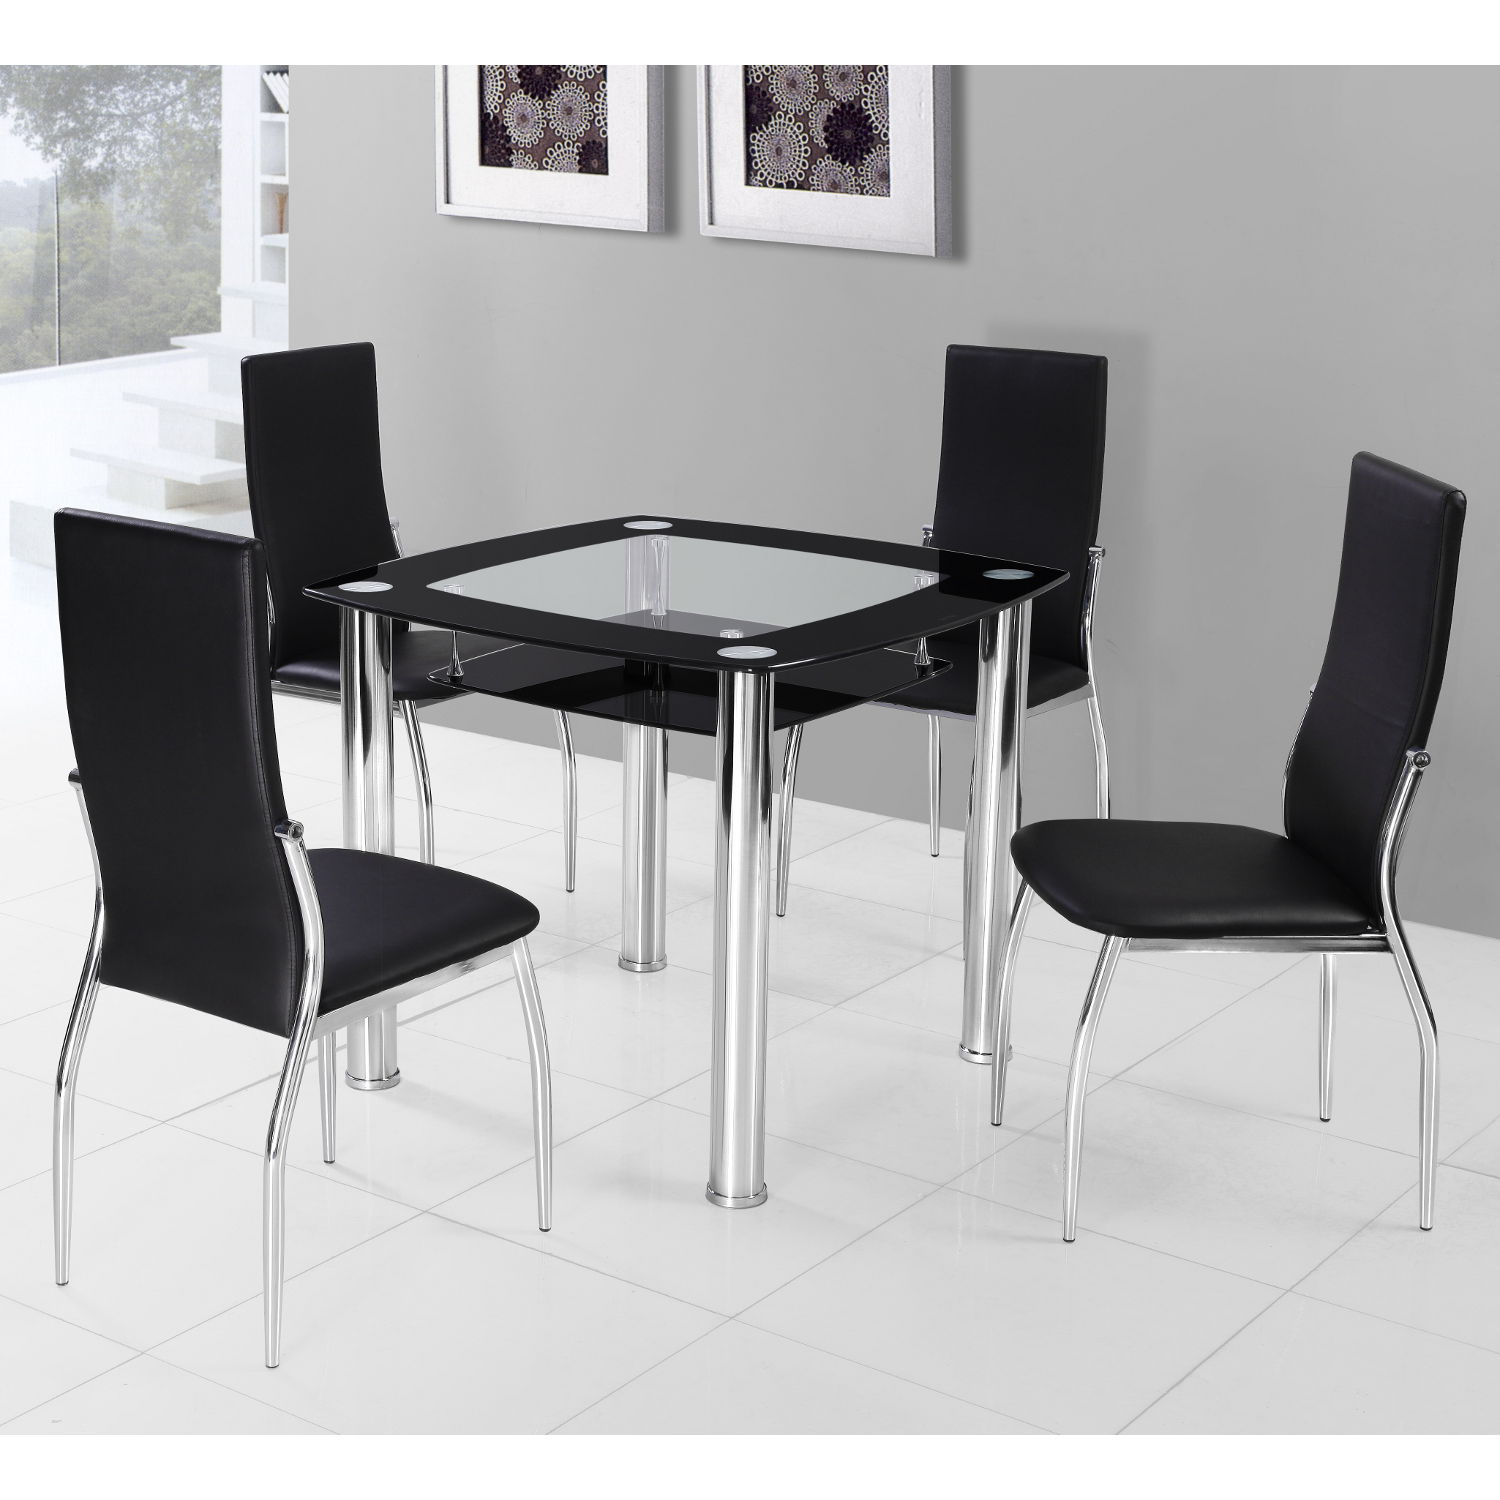 Black Steel Dining ROom 4 Chairs With Square Glass Table Design